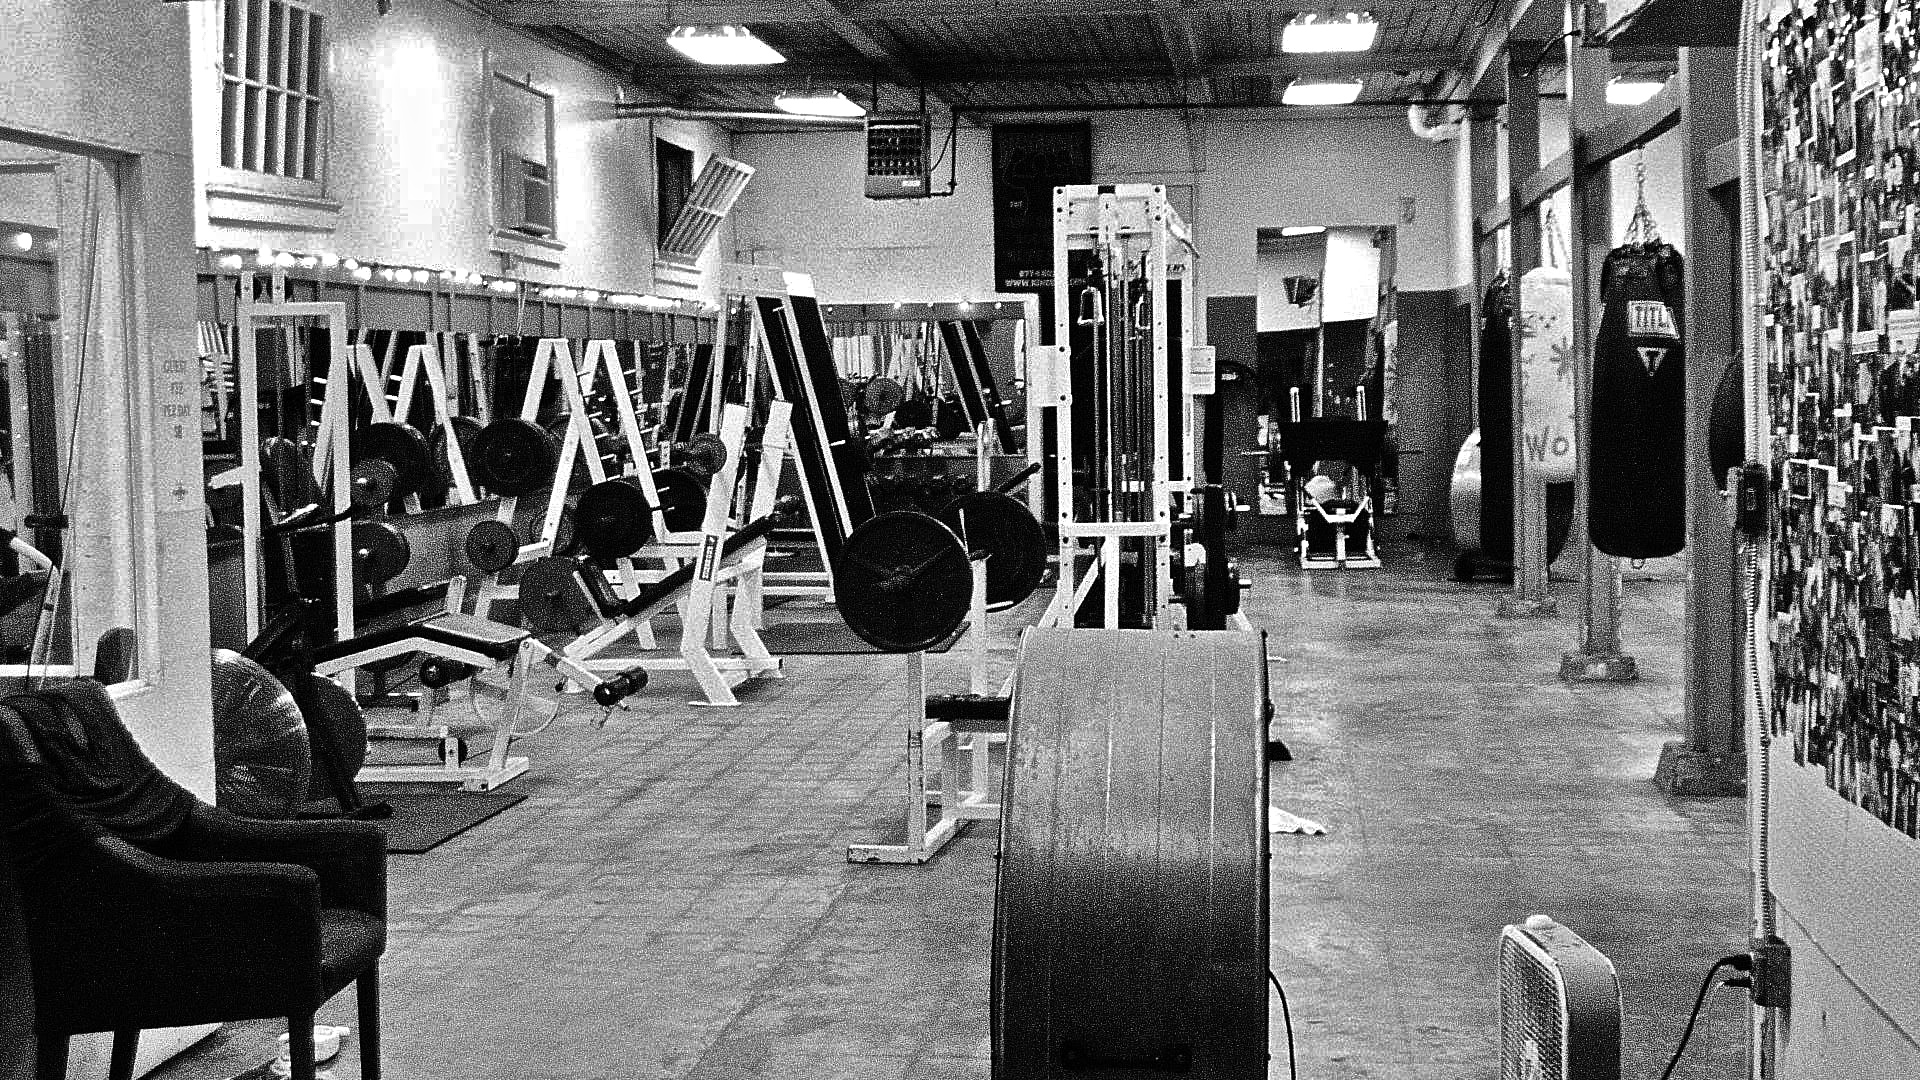 Weight Room Black And White Wallpaper